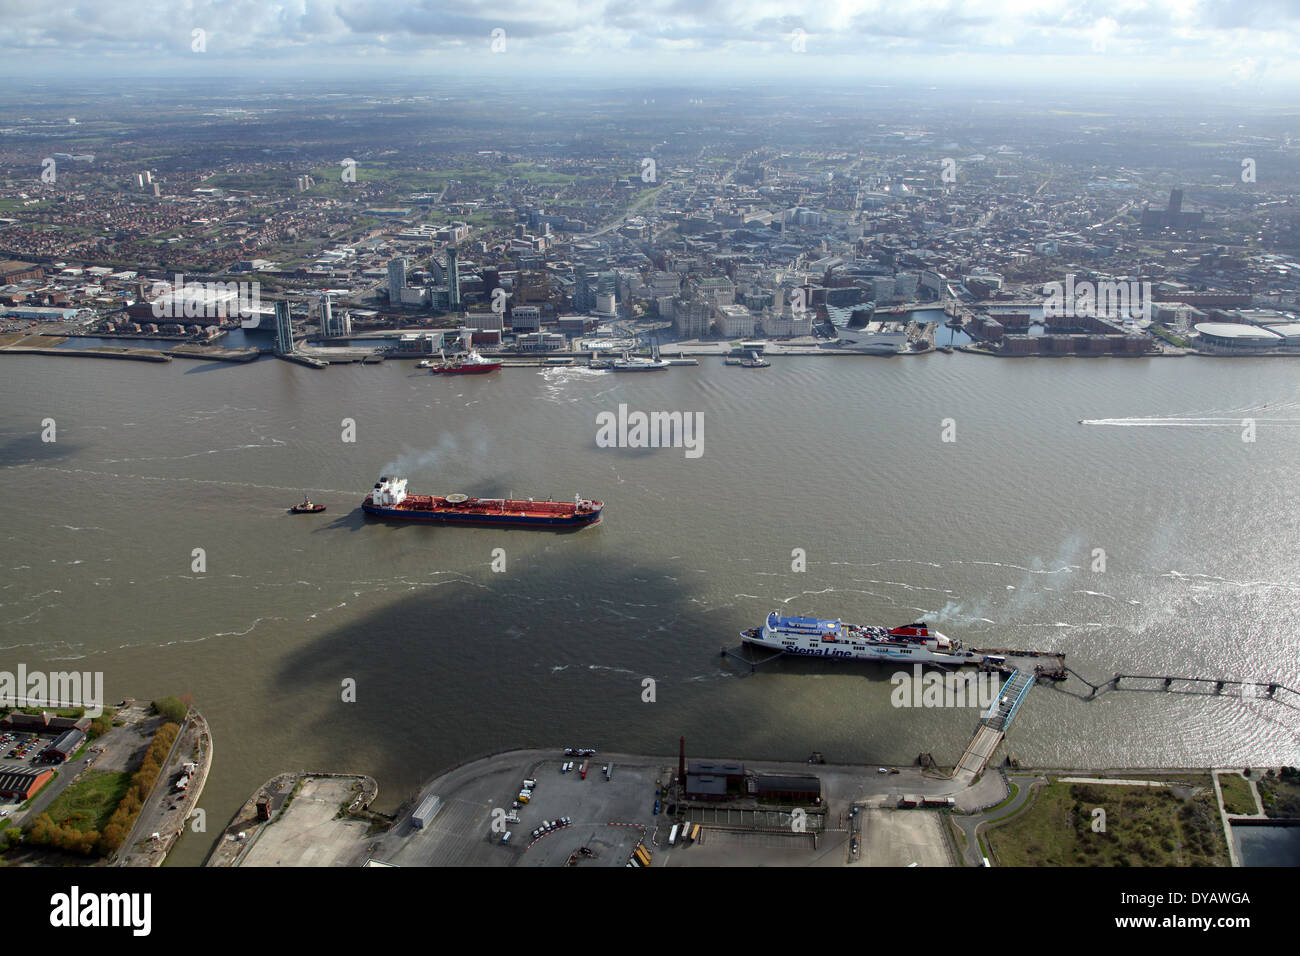 aerial view of Liverpool and The River Mersey with two ships - Stock Image